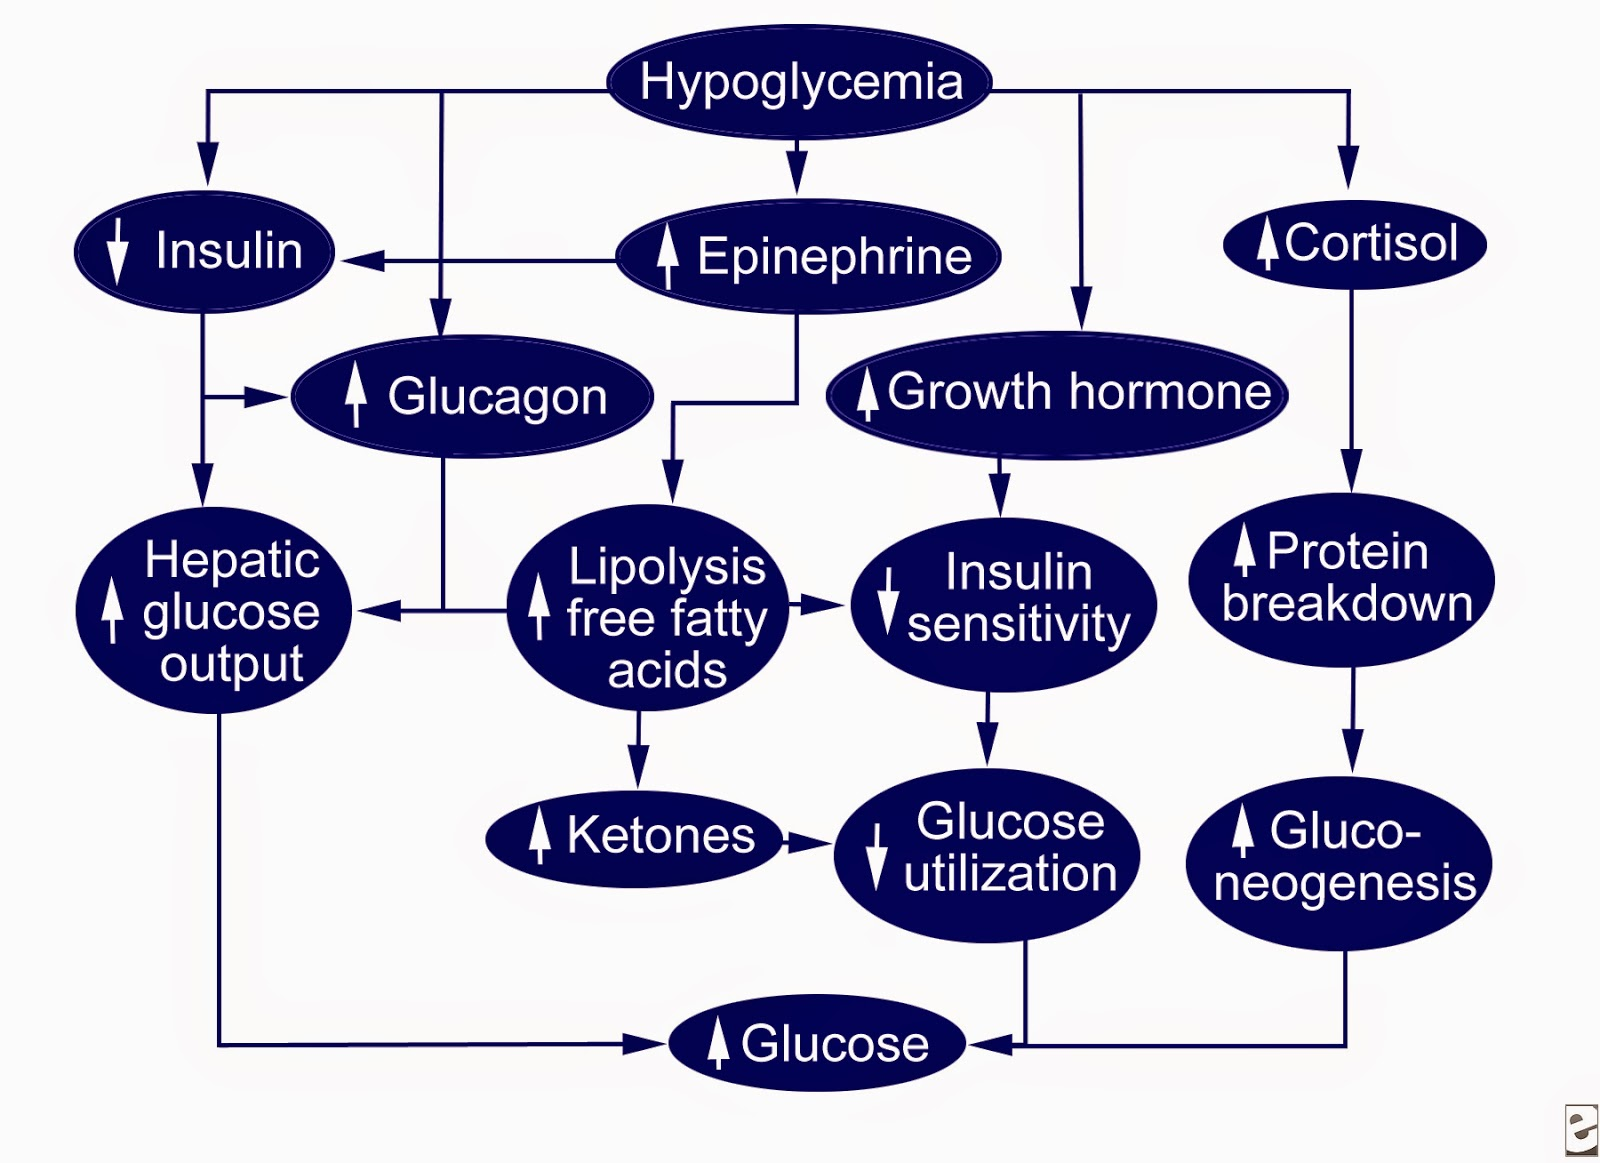 research paper hypoglycemia Research paper about hypoglycemia 26 may, 2018 research papers 0 there is no one specific cause of hypoglycemia, but there are several underlying factors that can contribute to.